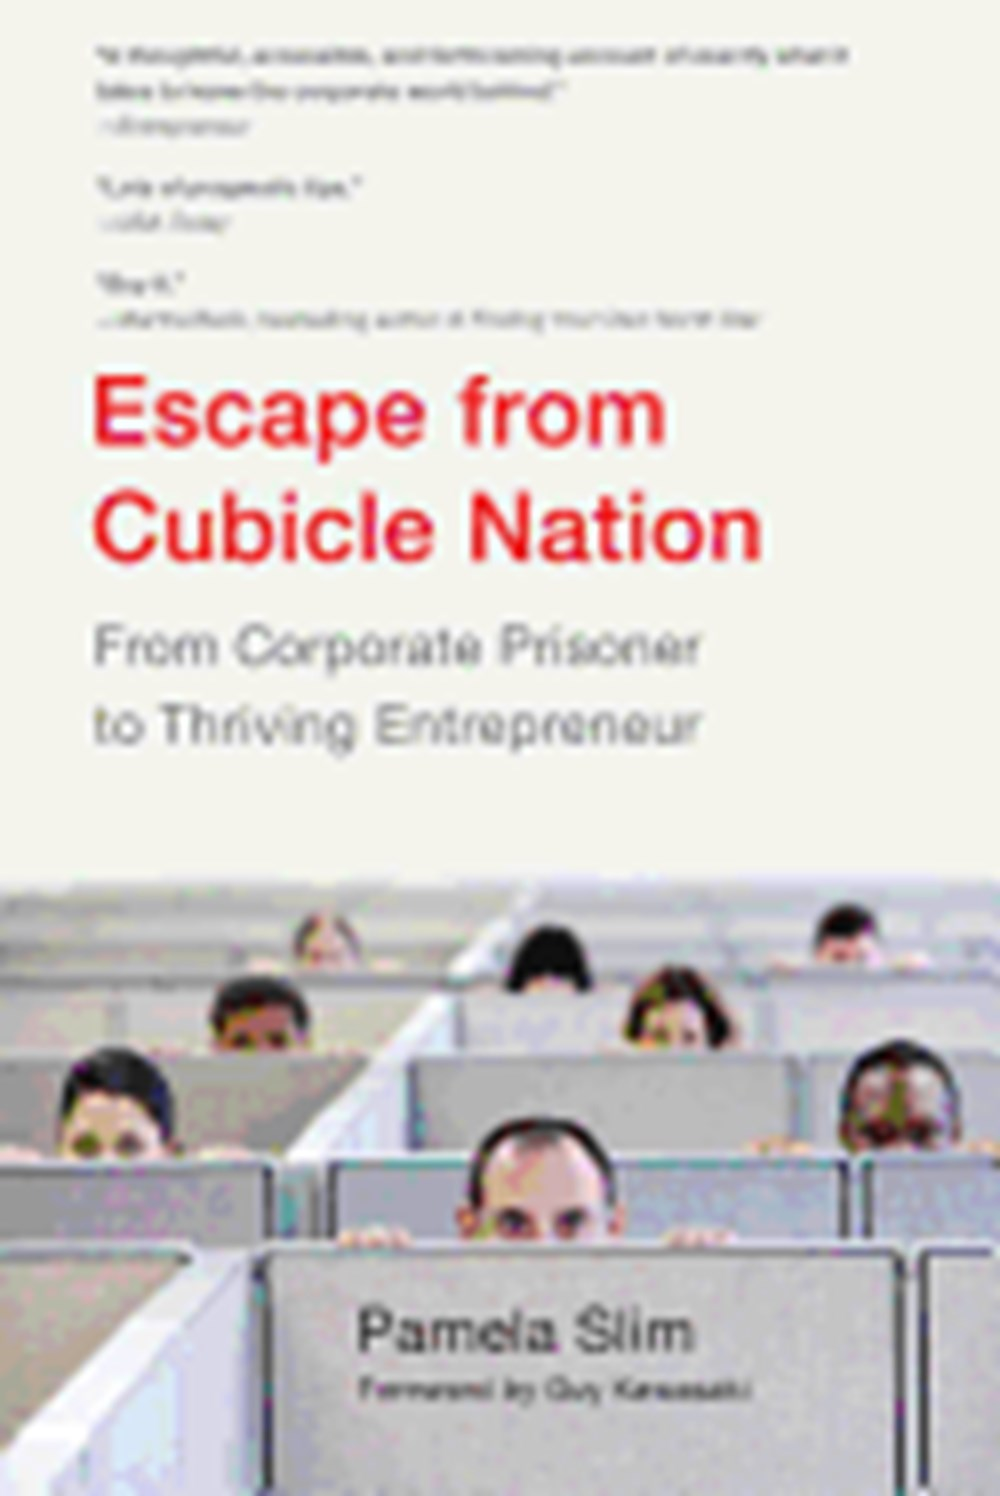 Escape from Cubicle Nation From Corporate Prisoner to Thriving Entrepreneur